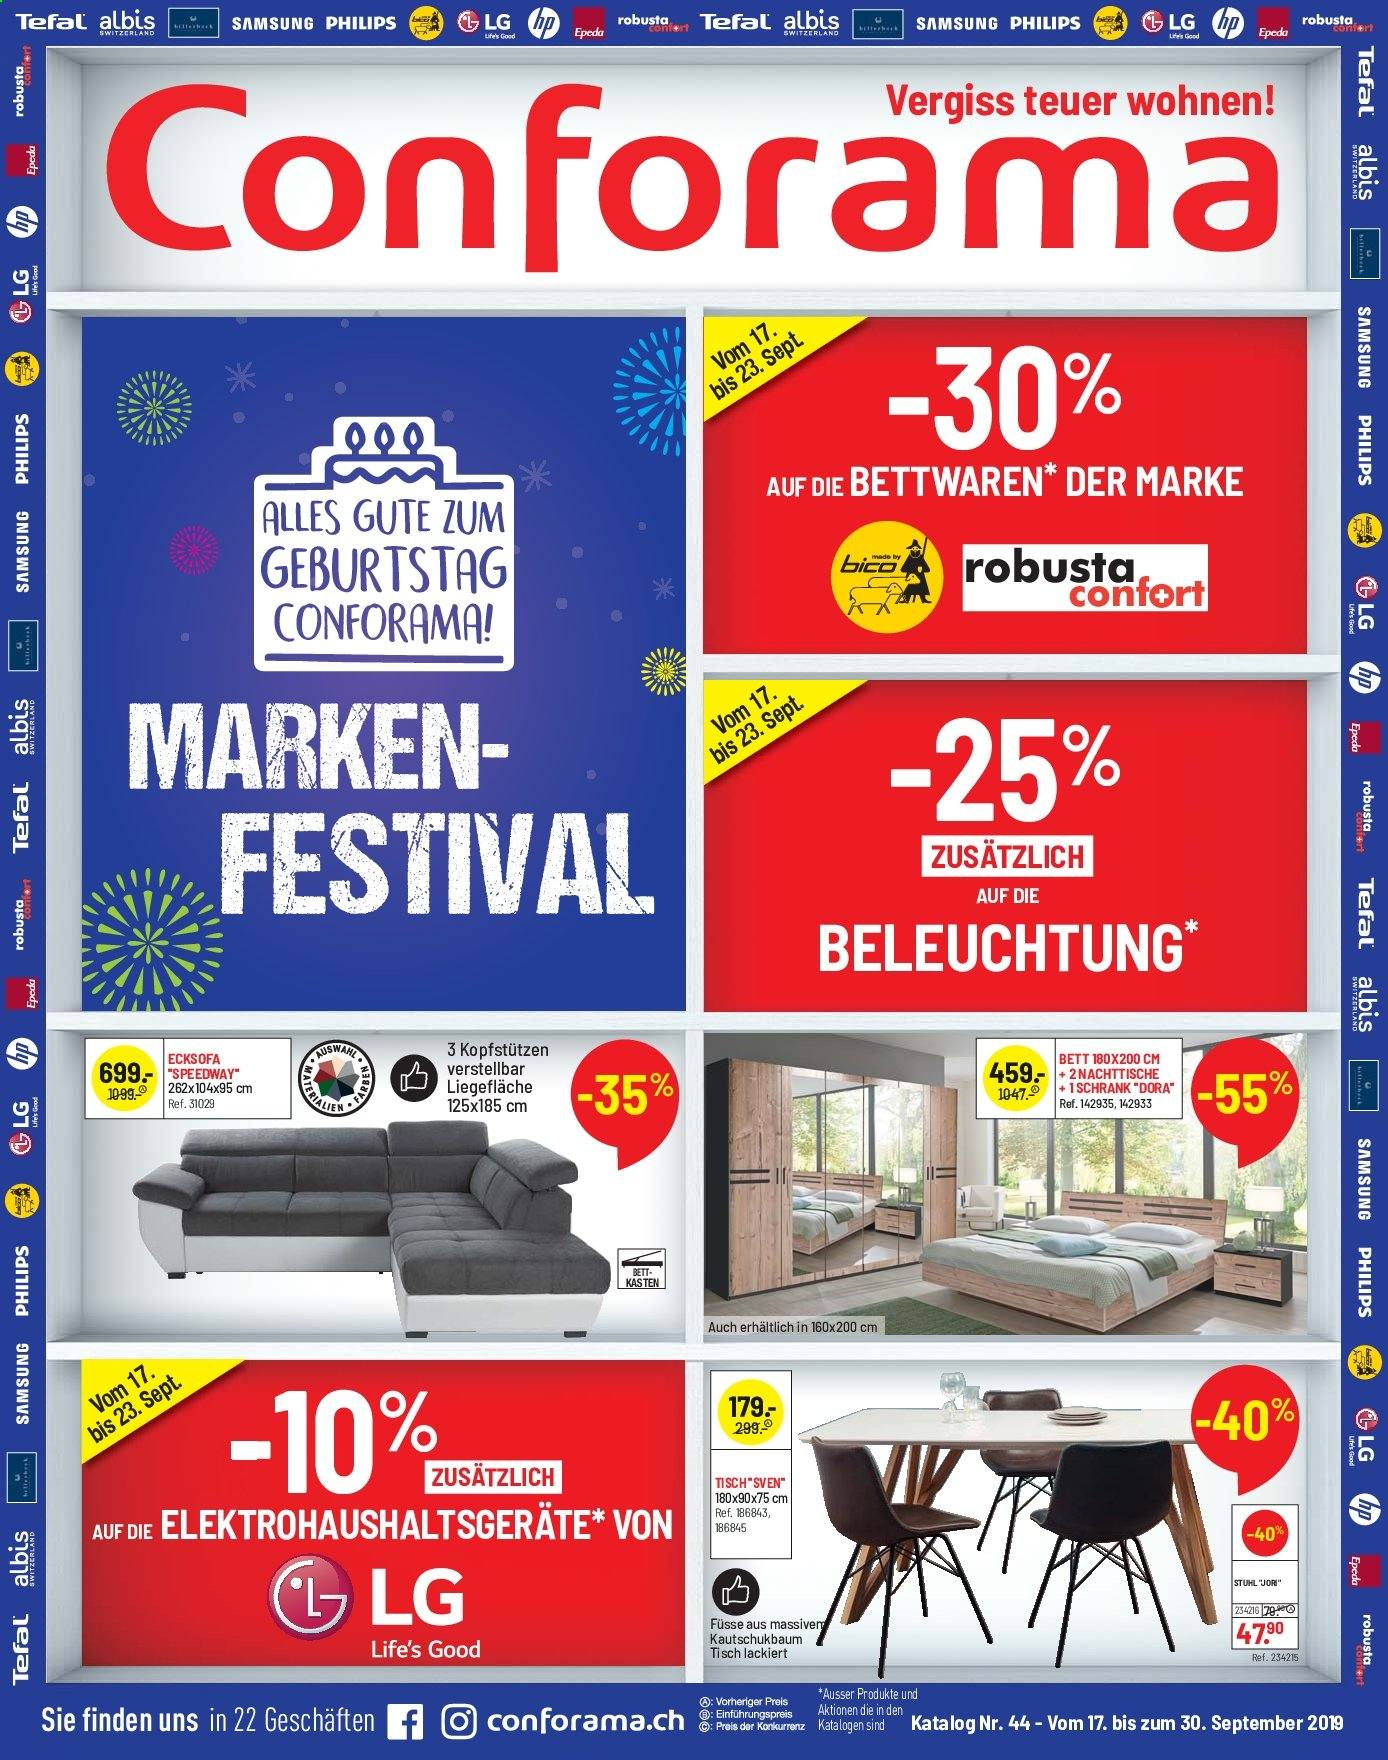 Catalogue Conforama 17.9.2019 - 30.9.2019 | Rabatt-kompass.ch